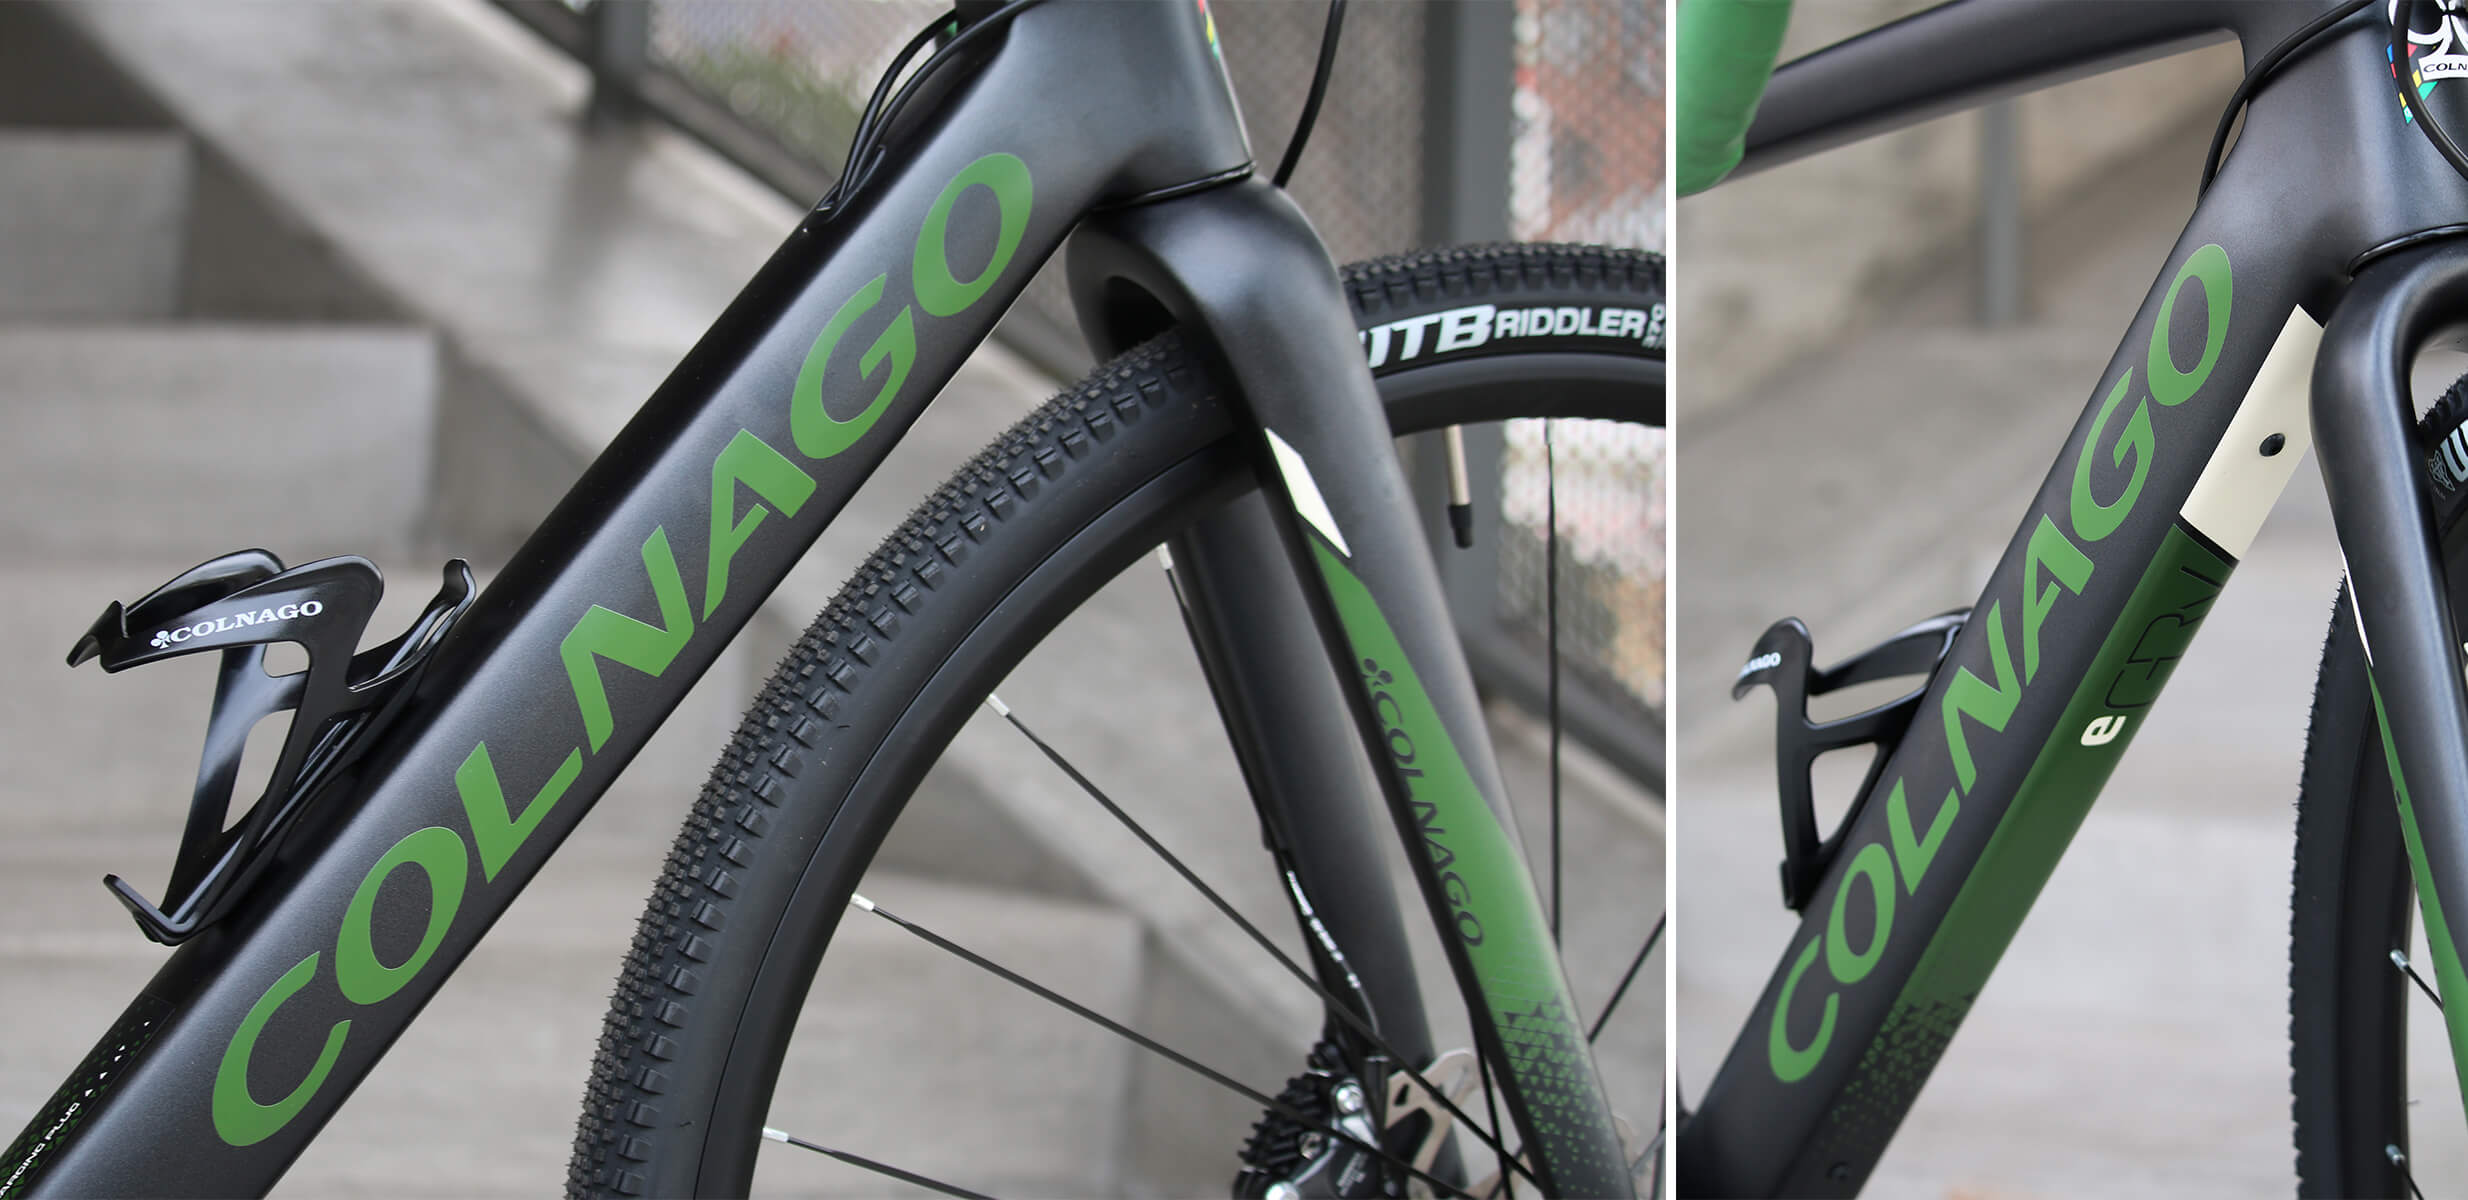 Colnago e-GRV Electric Gravel - Contender Bicycles